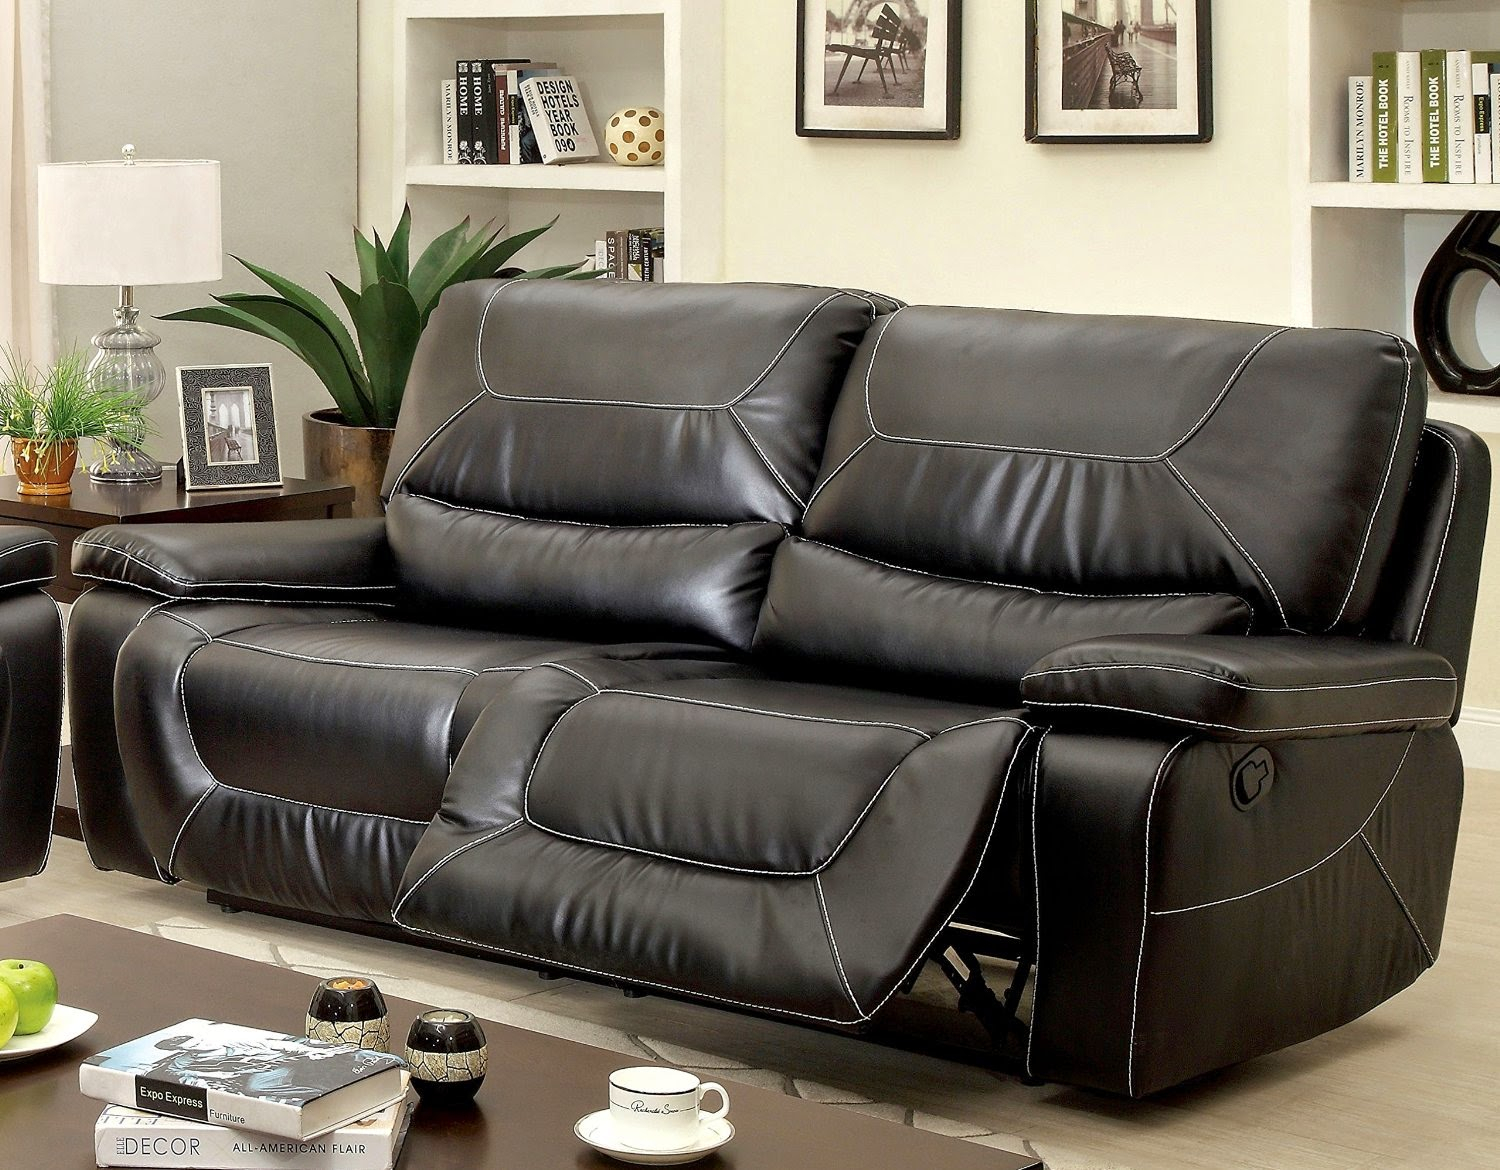 Sofa Recliner Reviews: Black Leather 2 Seater Recliner Sofa In 2 Seater Sofas (View 1 of 15)